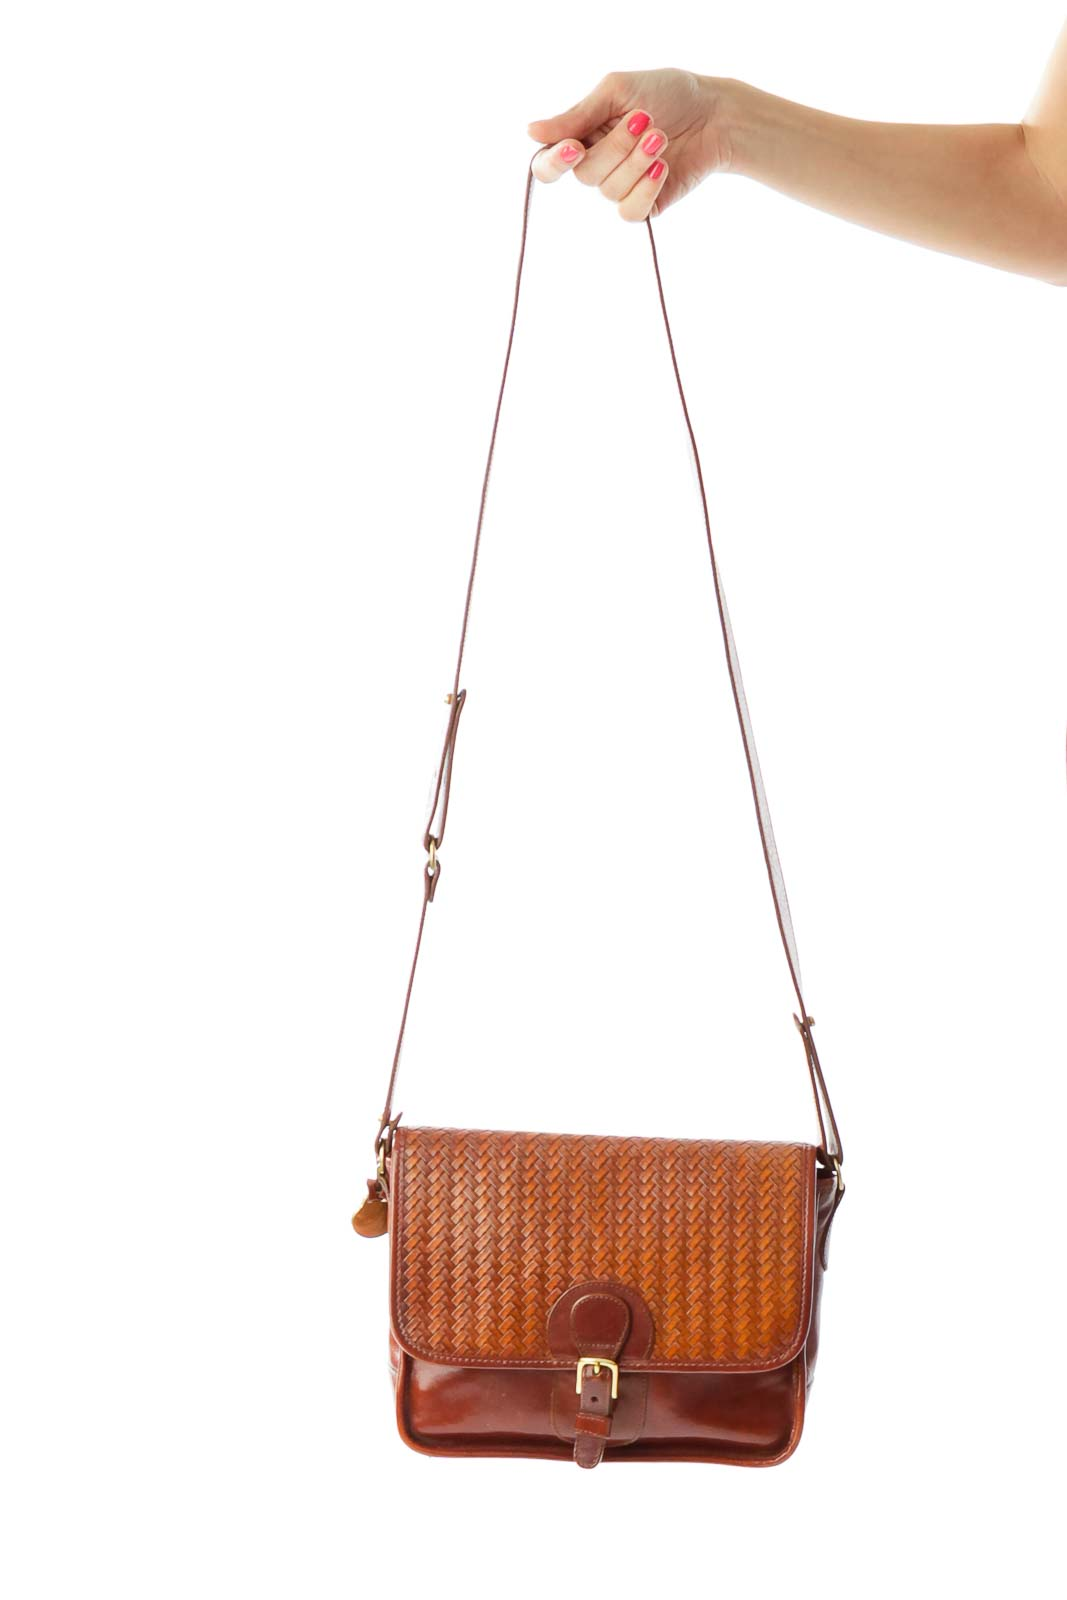 b89e59447815 Shop Brown Vintage Weave Detail Leather Crossbody Bag clothing and ...